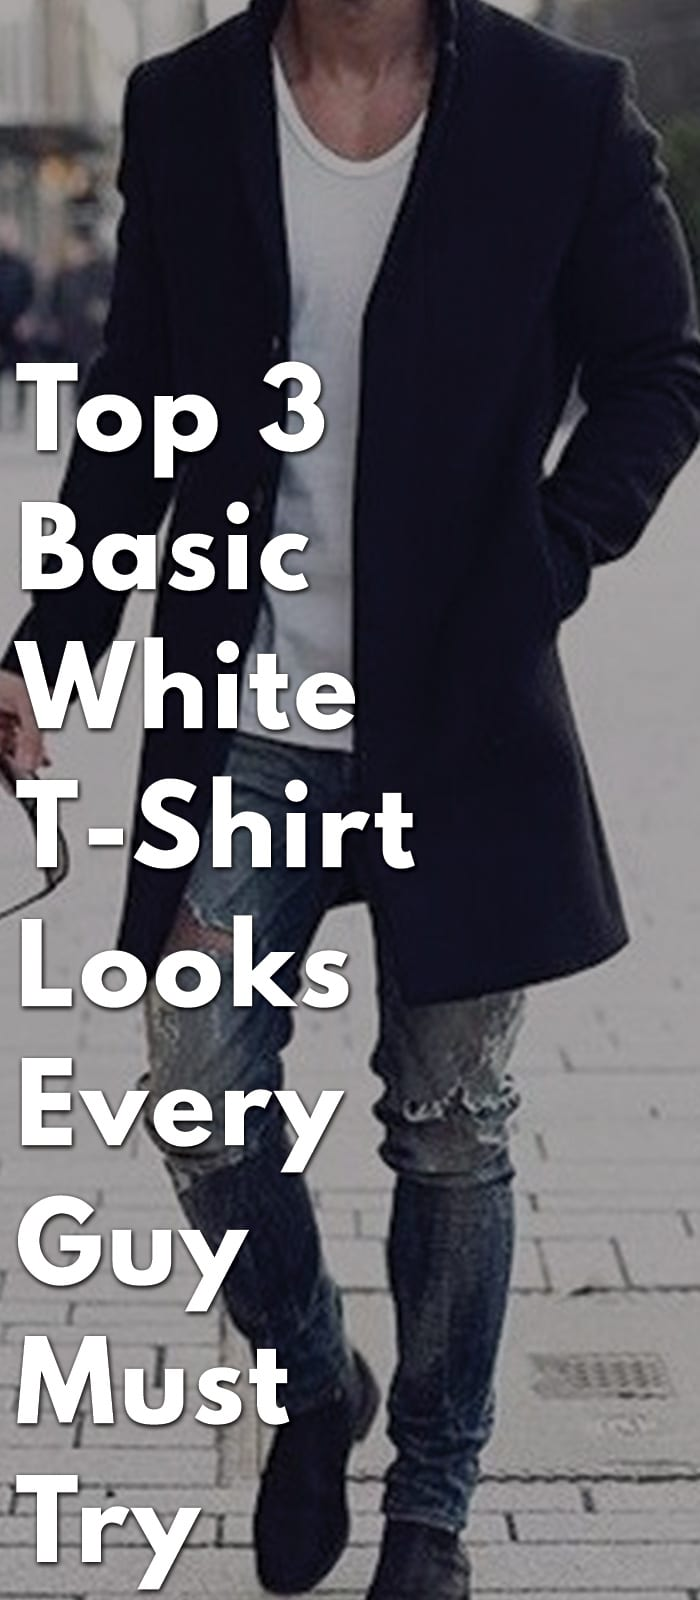 Top-3-Basic-White-T-Shirt-Looks-Every-Guy-Must-Try